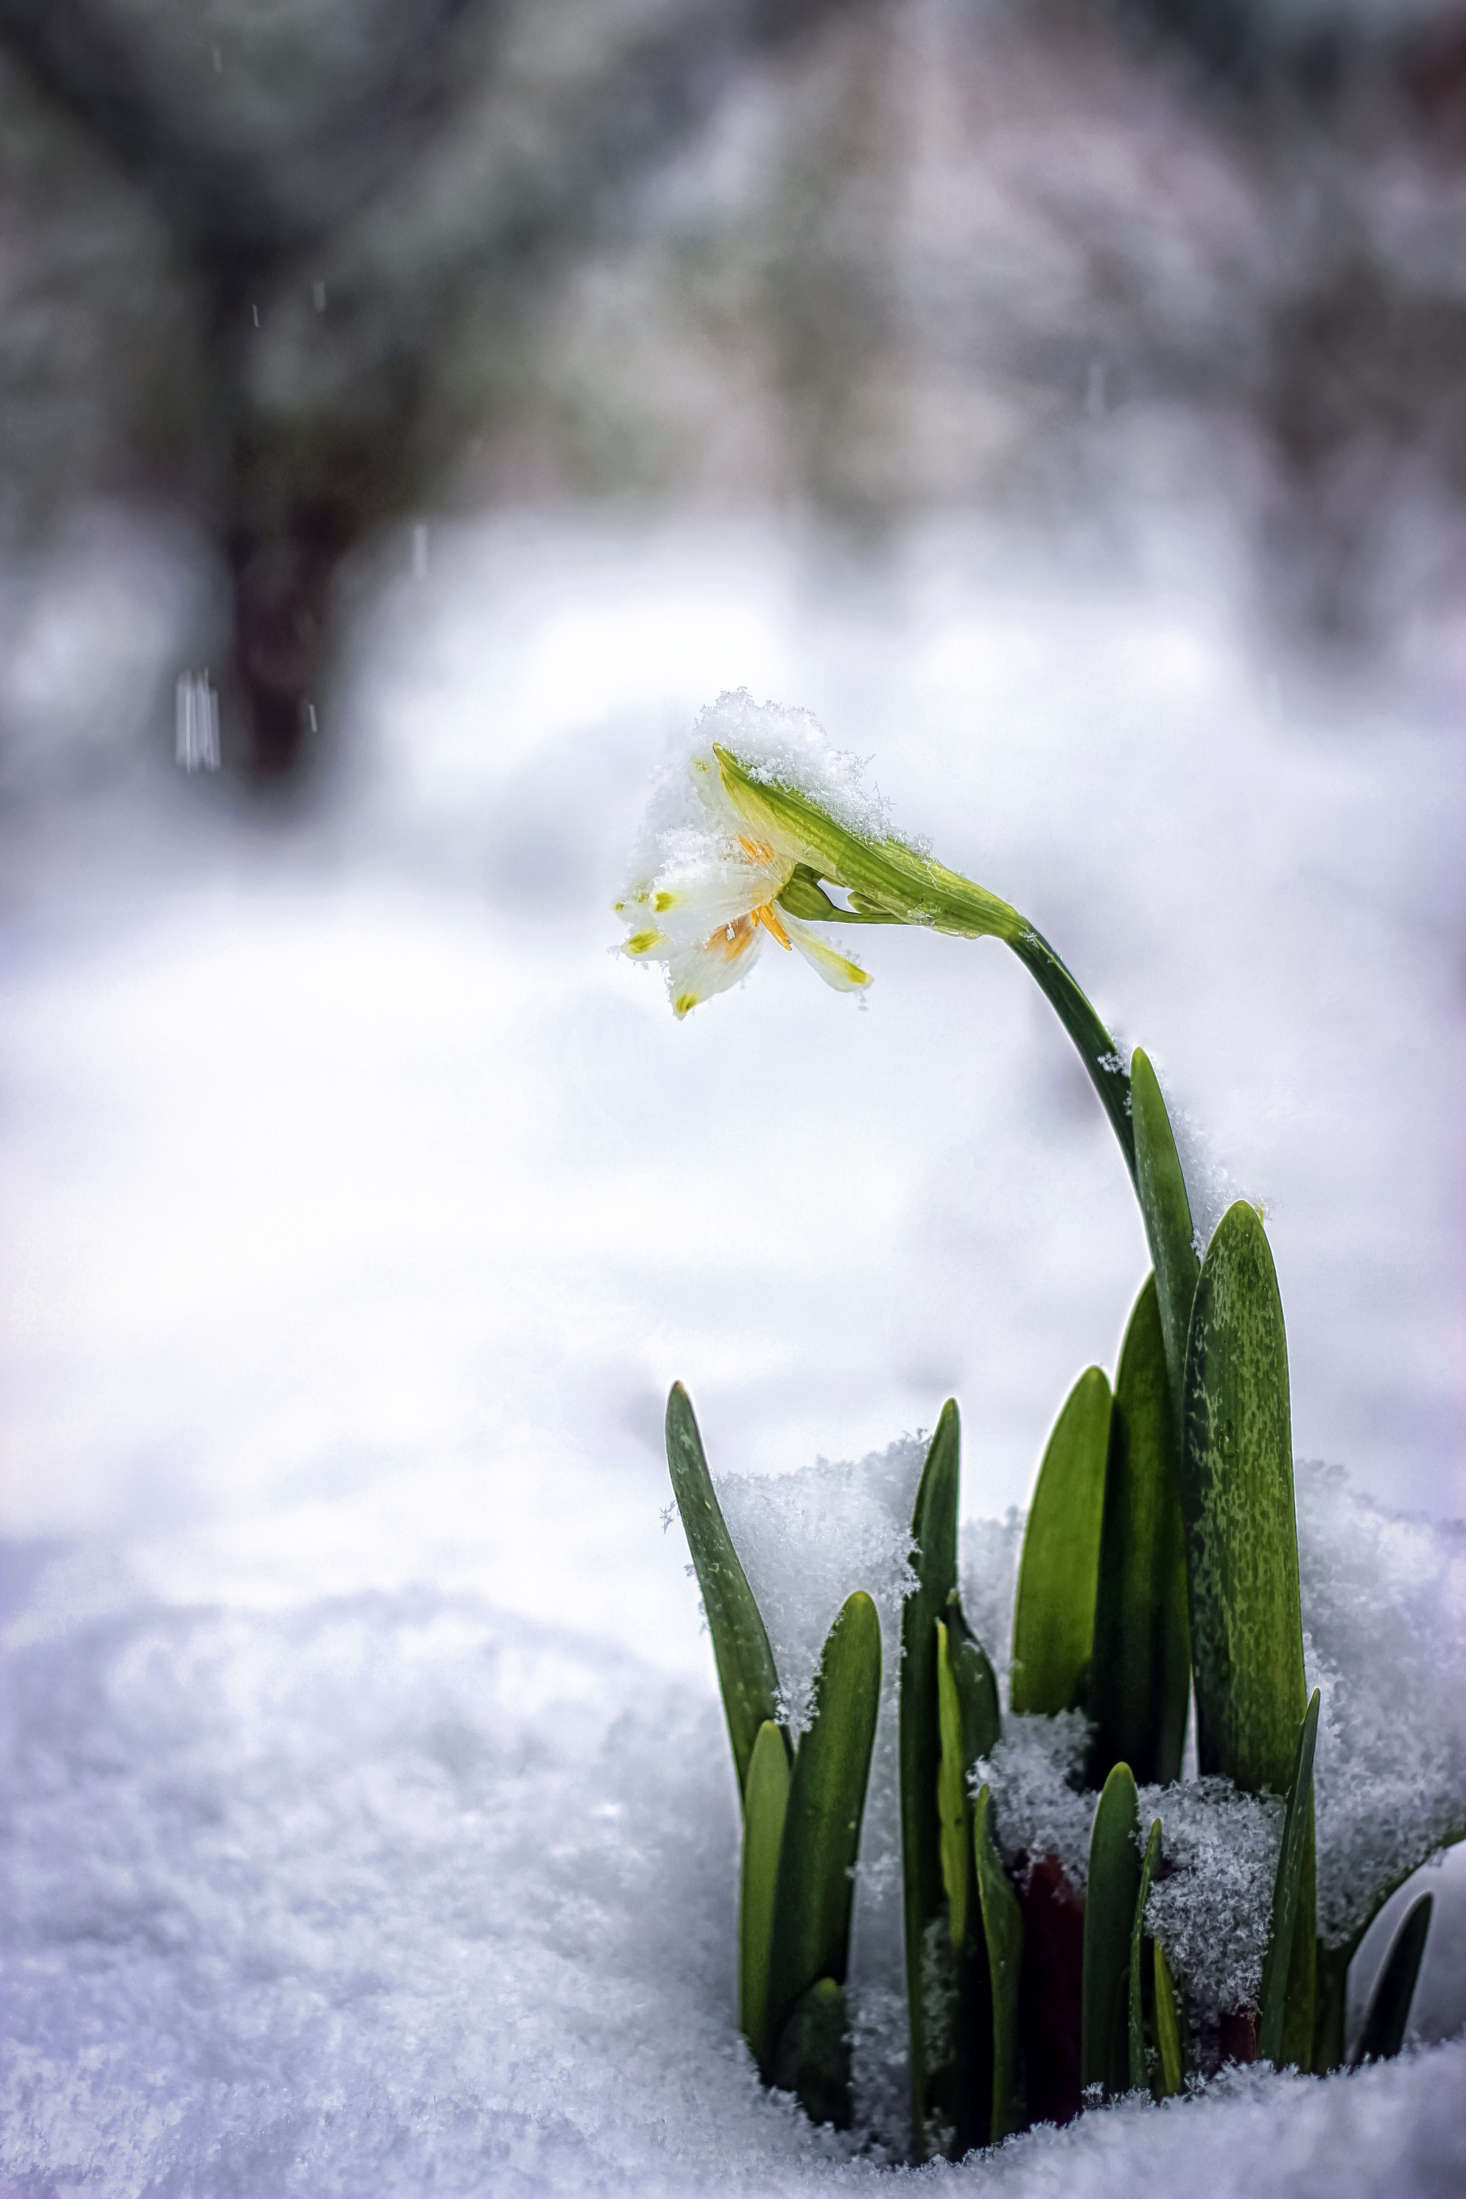 Narcissus blooming in snow. Photograph by Natalia Medd via Flickr.